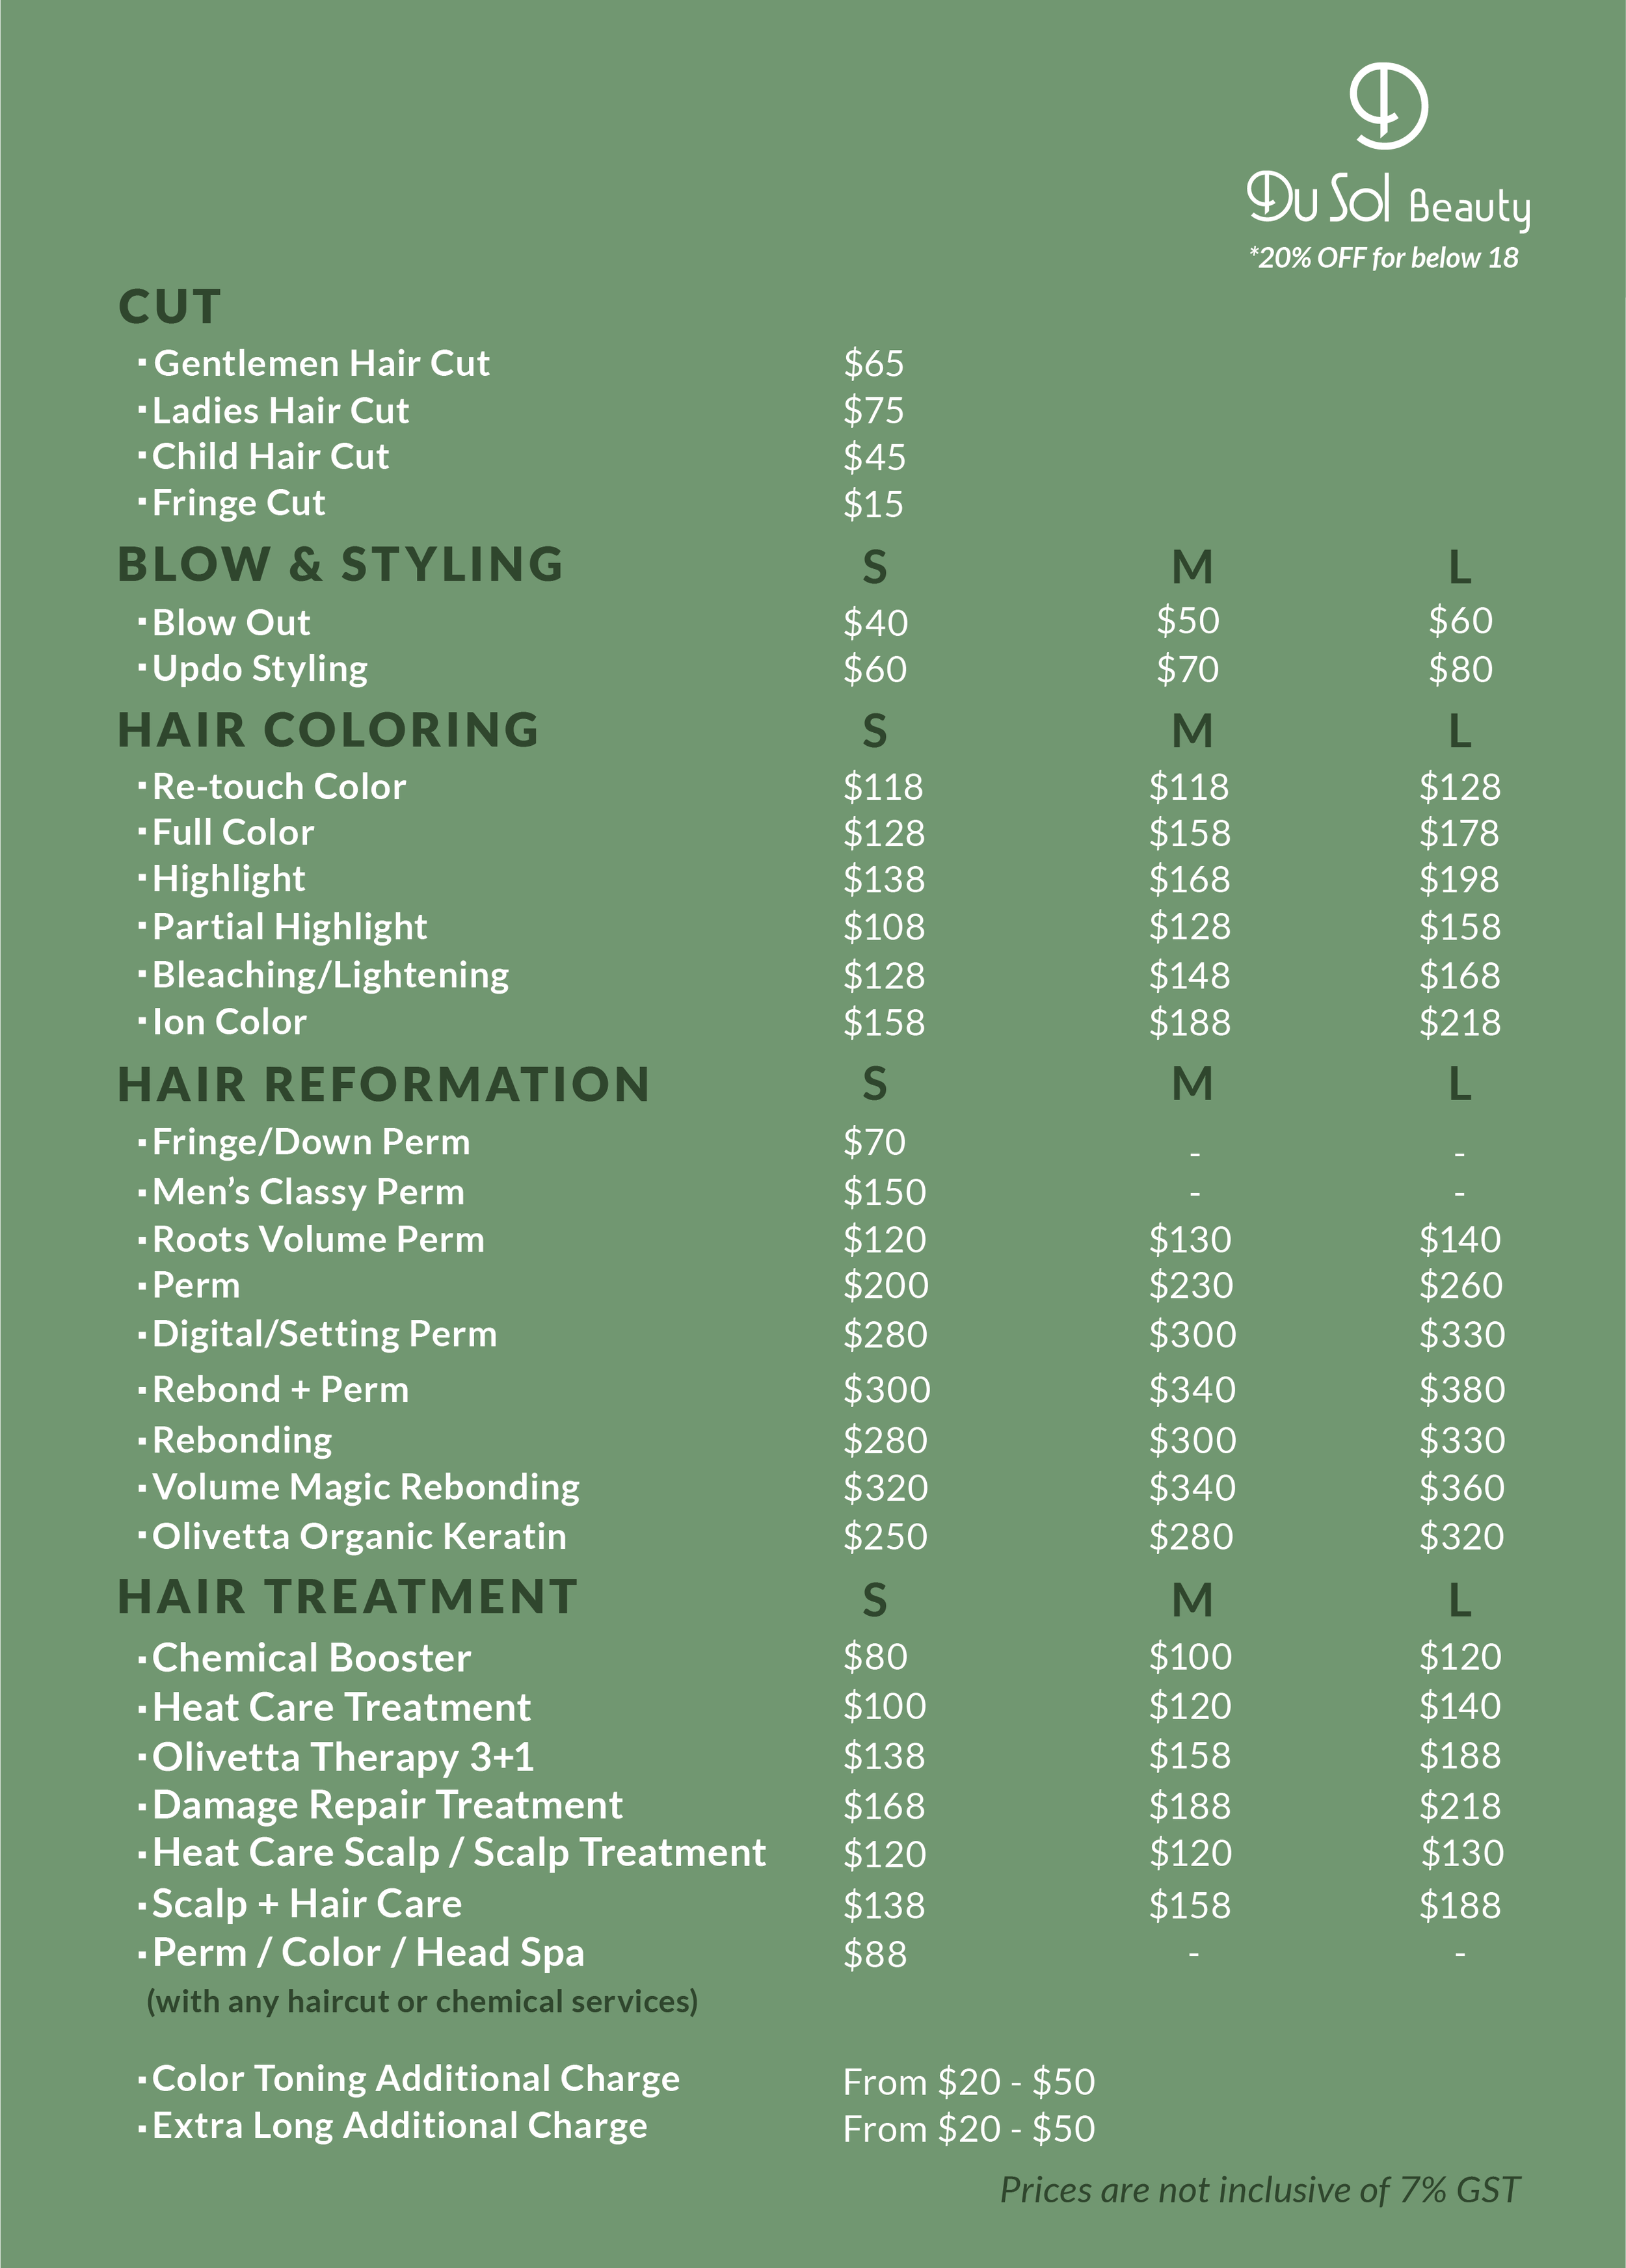 DuSol Beauty, located at orchard, scotts square, korean hair salon services pricing